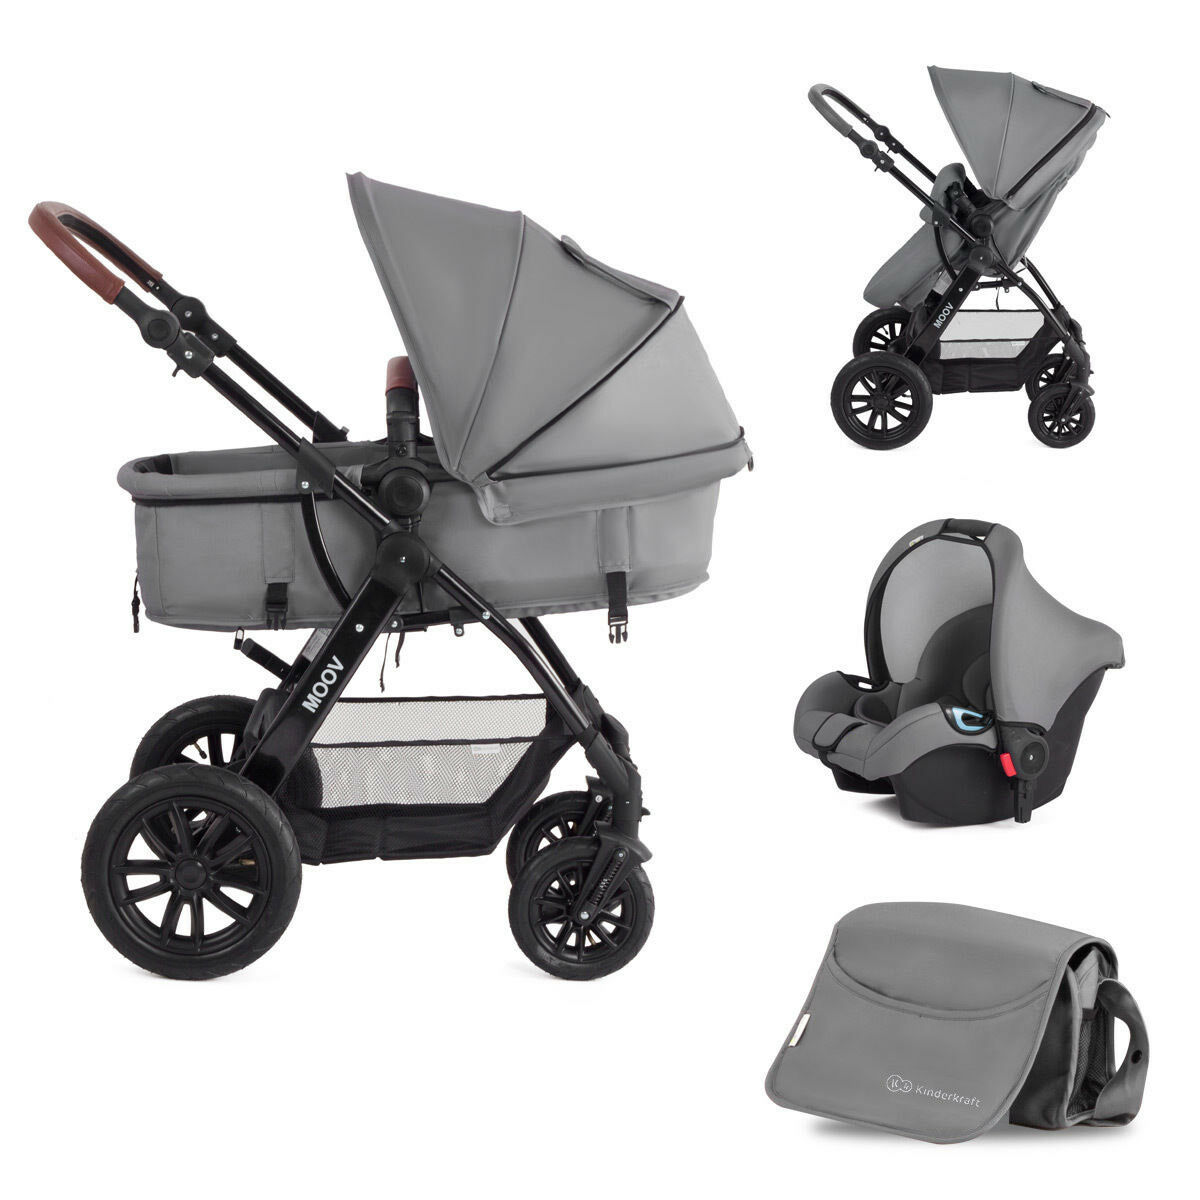 kinderkraft moov multi kinderwagen kombikinderwagen 3in1 mit buggy babyschale eur 269 95. Black Bedroom Furniture Sets. Home Design Ideas